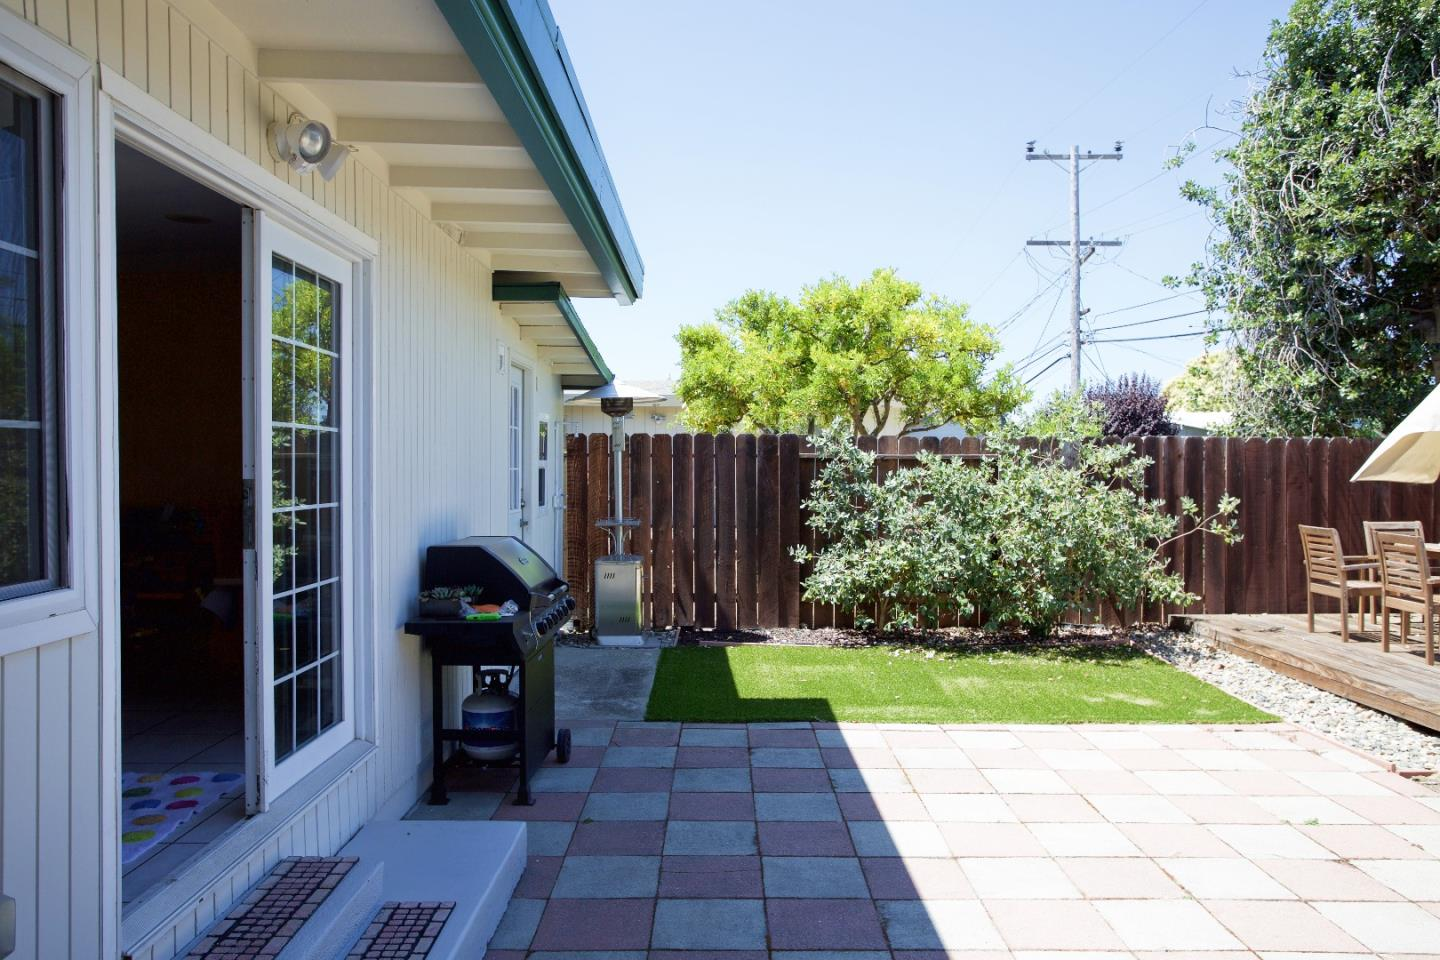 Additional photo for property listing at 1771 Brooks Street  San Mateo, California 94403 Estados Unidos